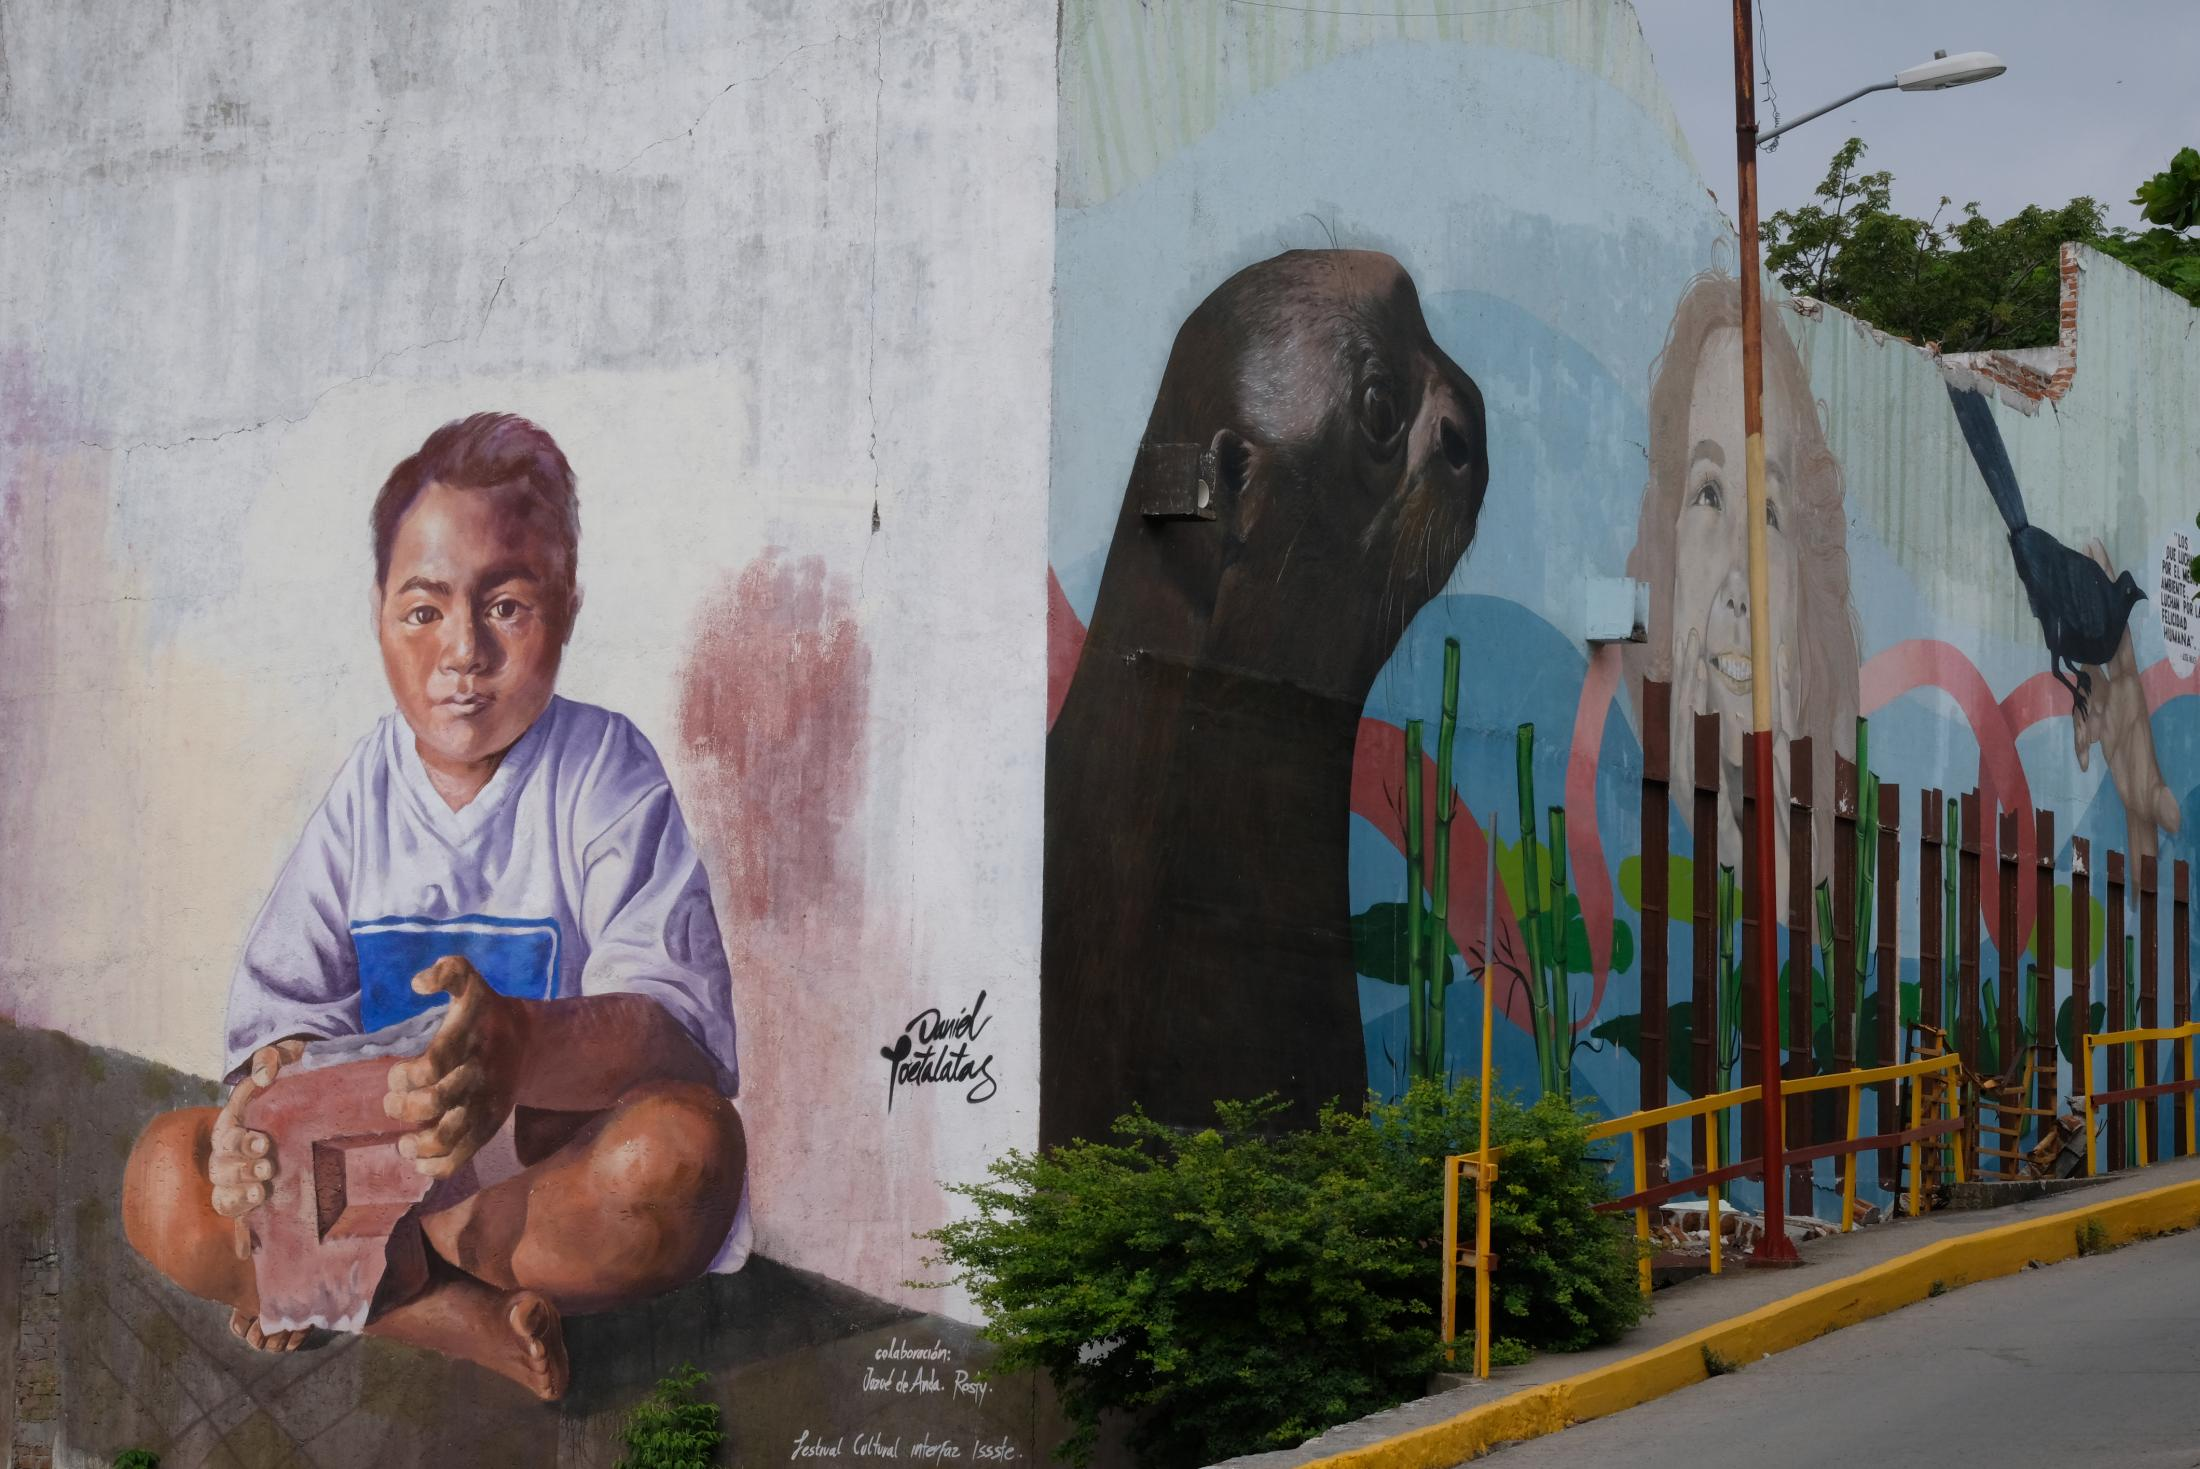 A mural next to the town market had been dedicated to the conservation of nature, its people and youth who live in the communities. Juchitan is located in a central plain in the Isthmus of Tehuantepec. The Isthmus has historically been an area of geopolitical importance for its oil industry which has deteriorated the natural environment and its communities